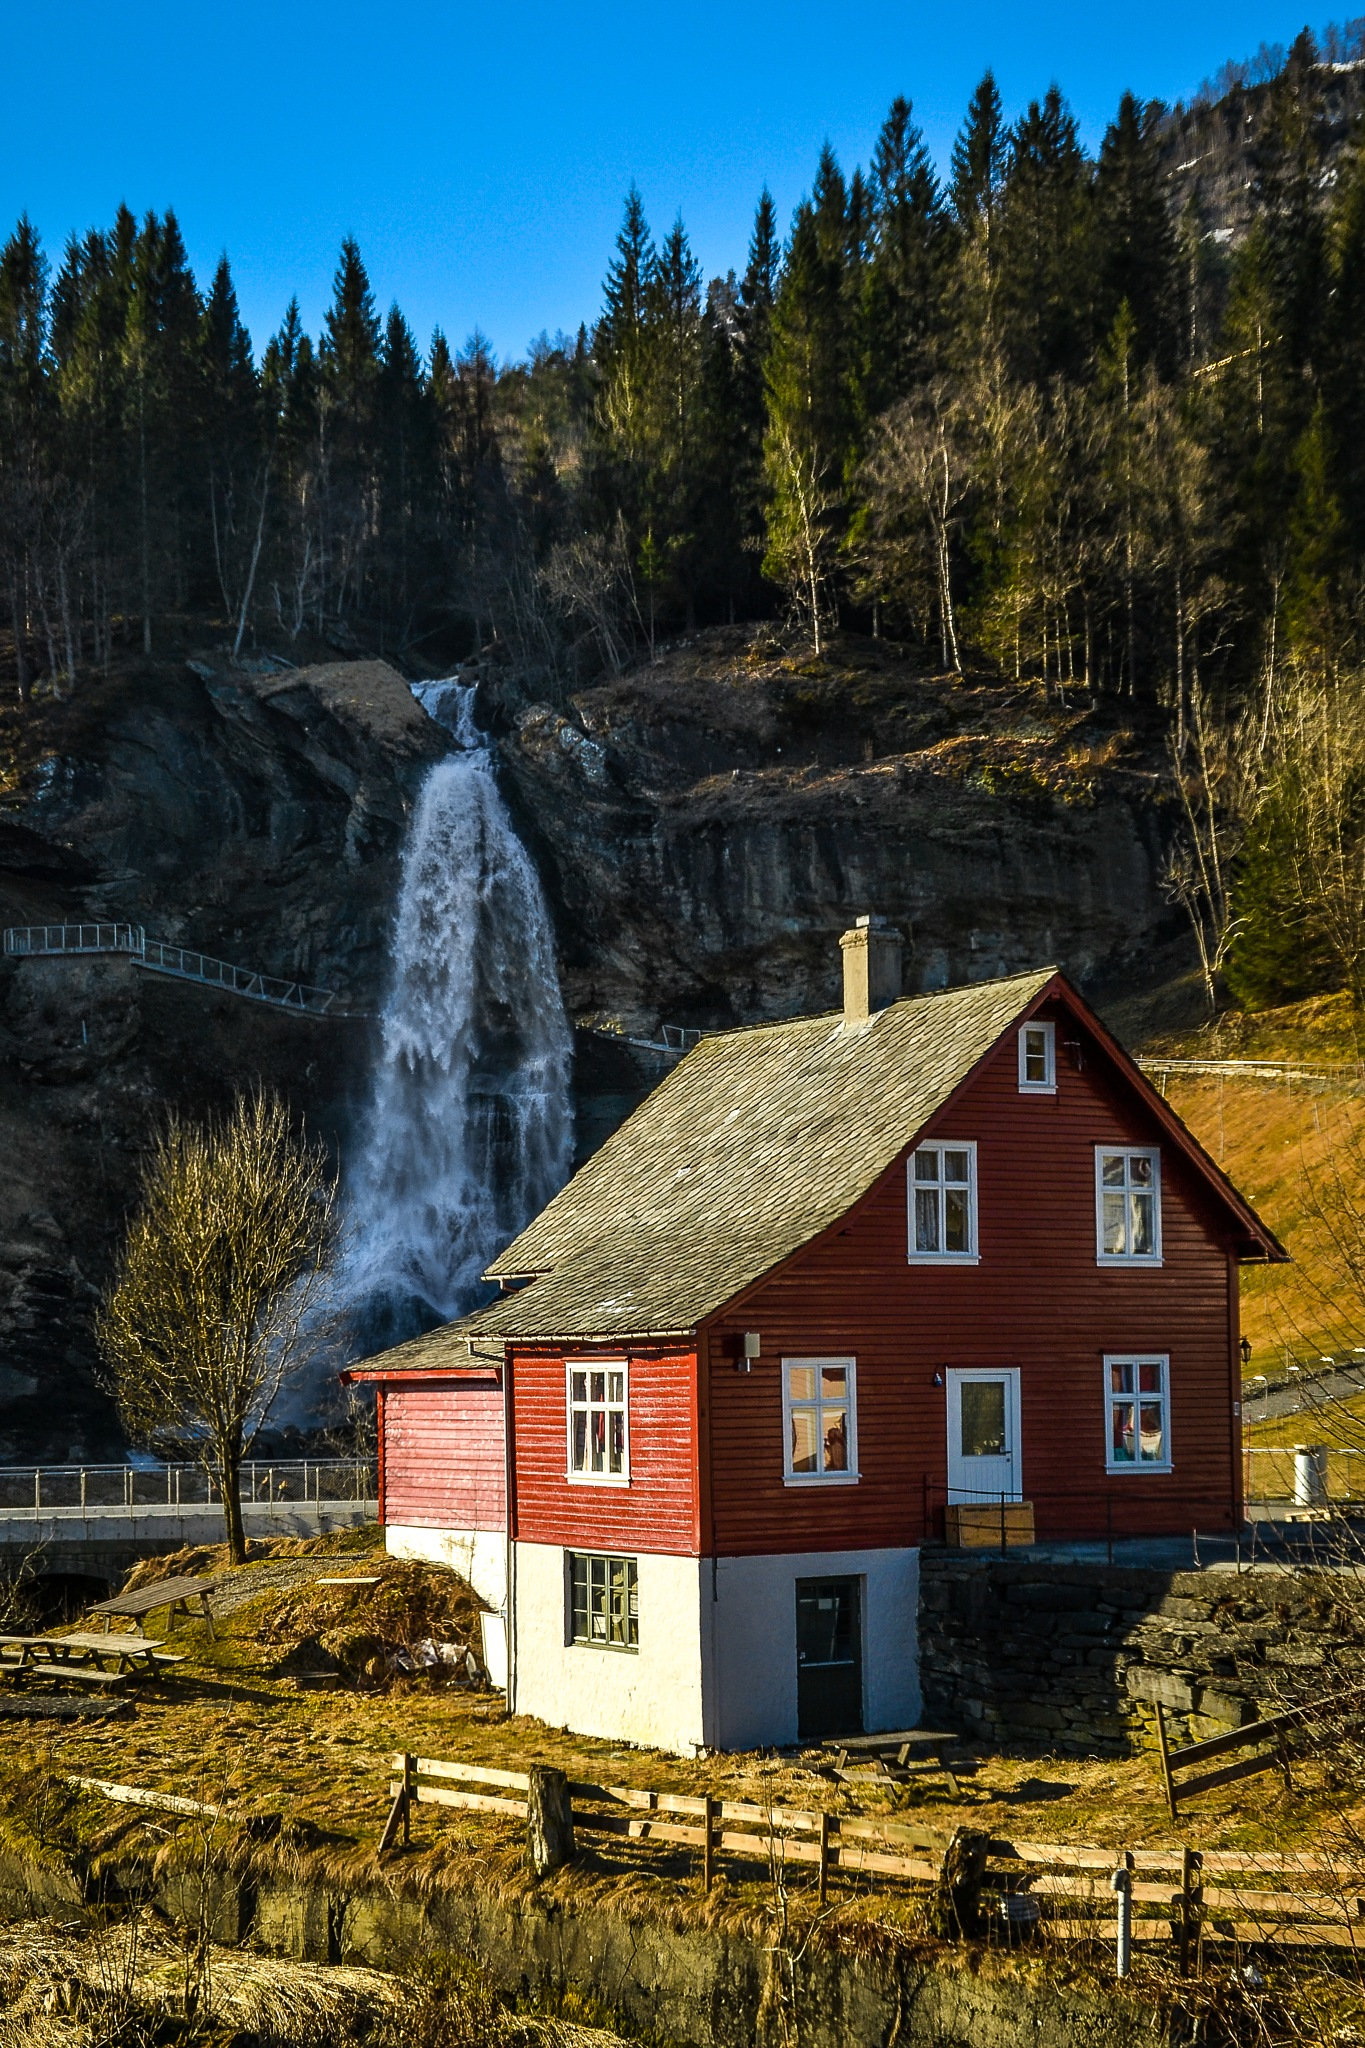 The House by the Falls by MjollnirMacAlba